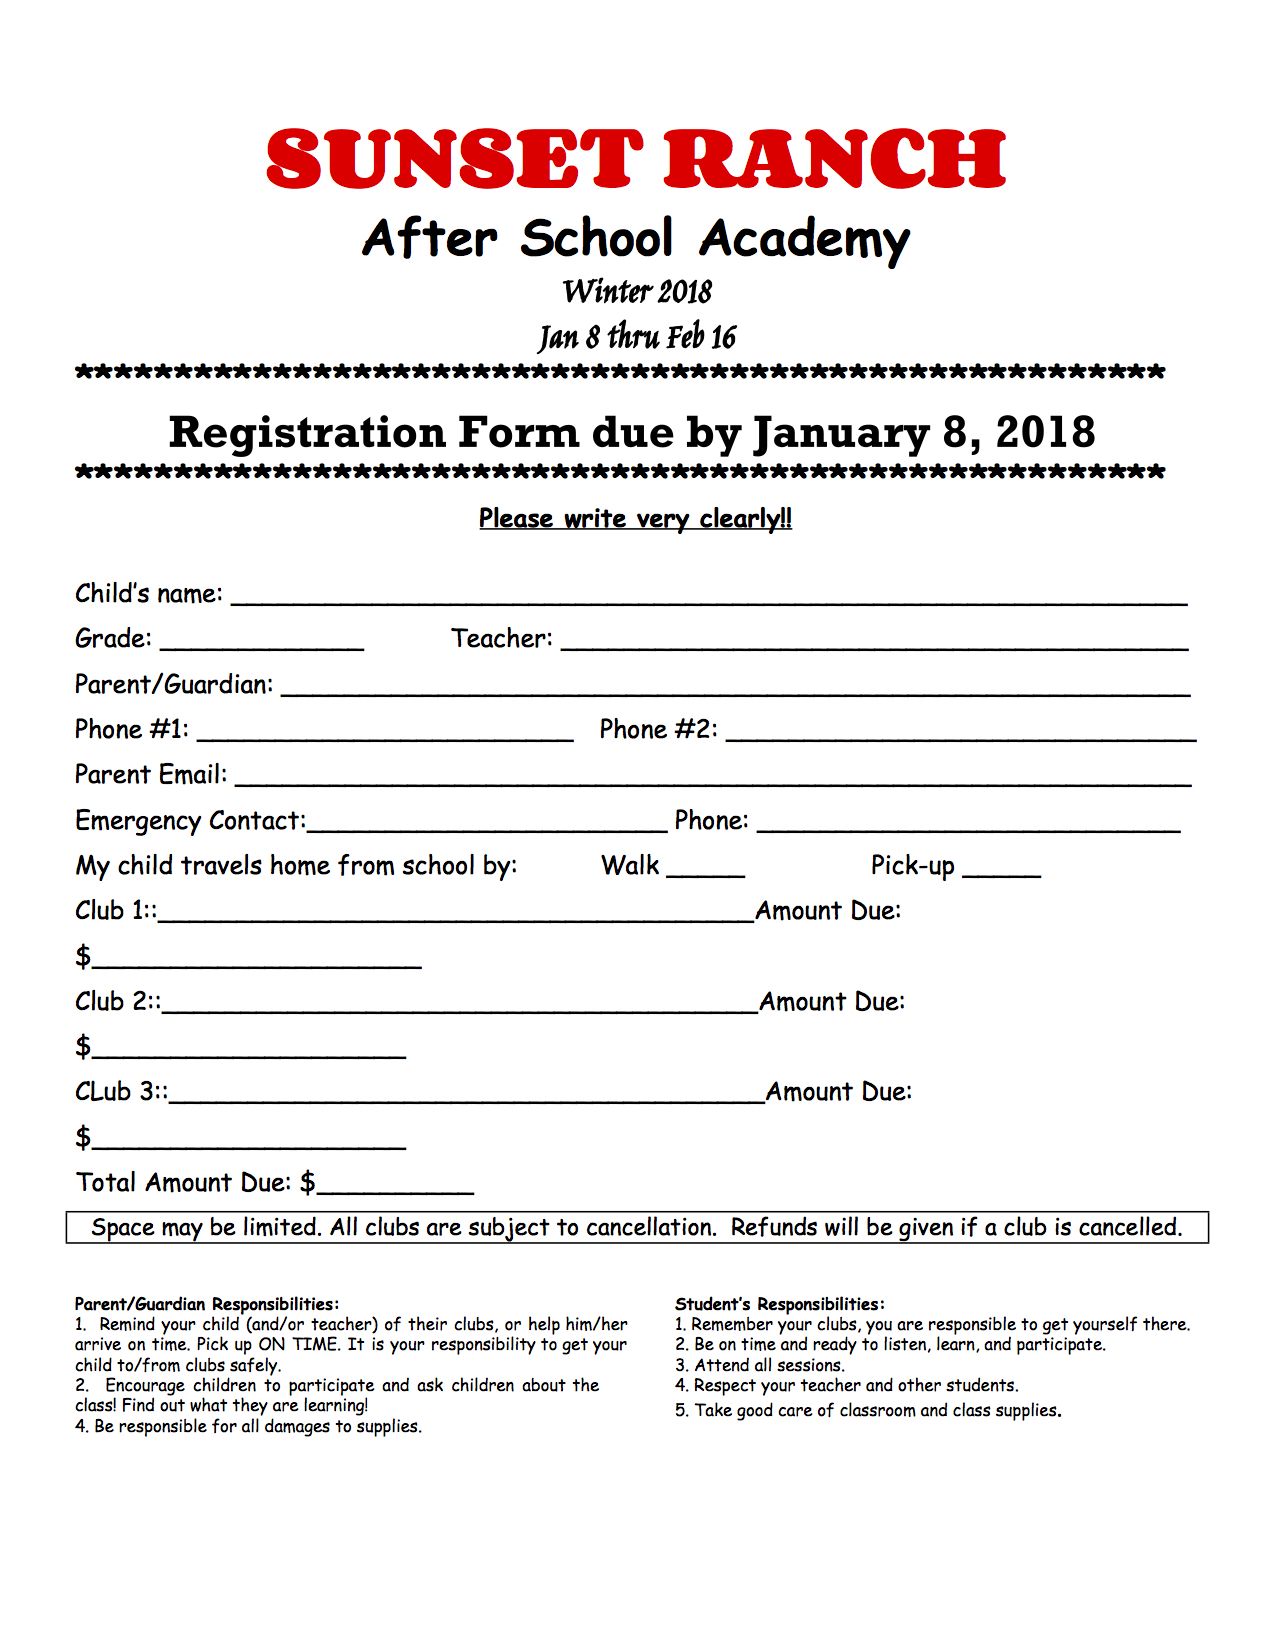 SRES Winter 2018 ASA Flyer copy2